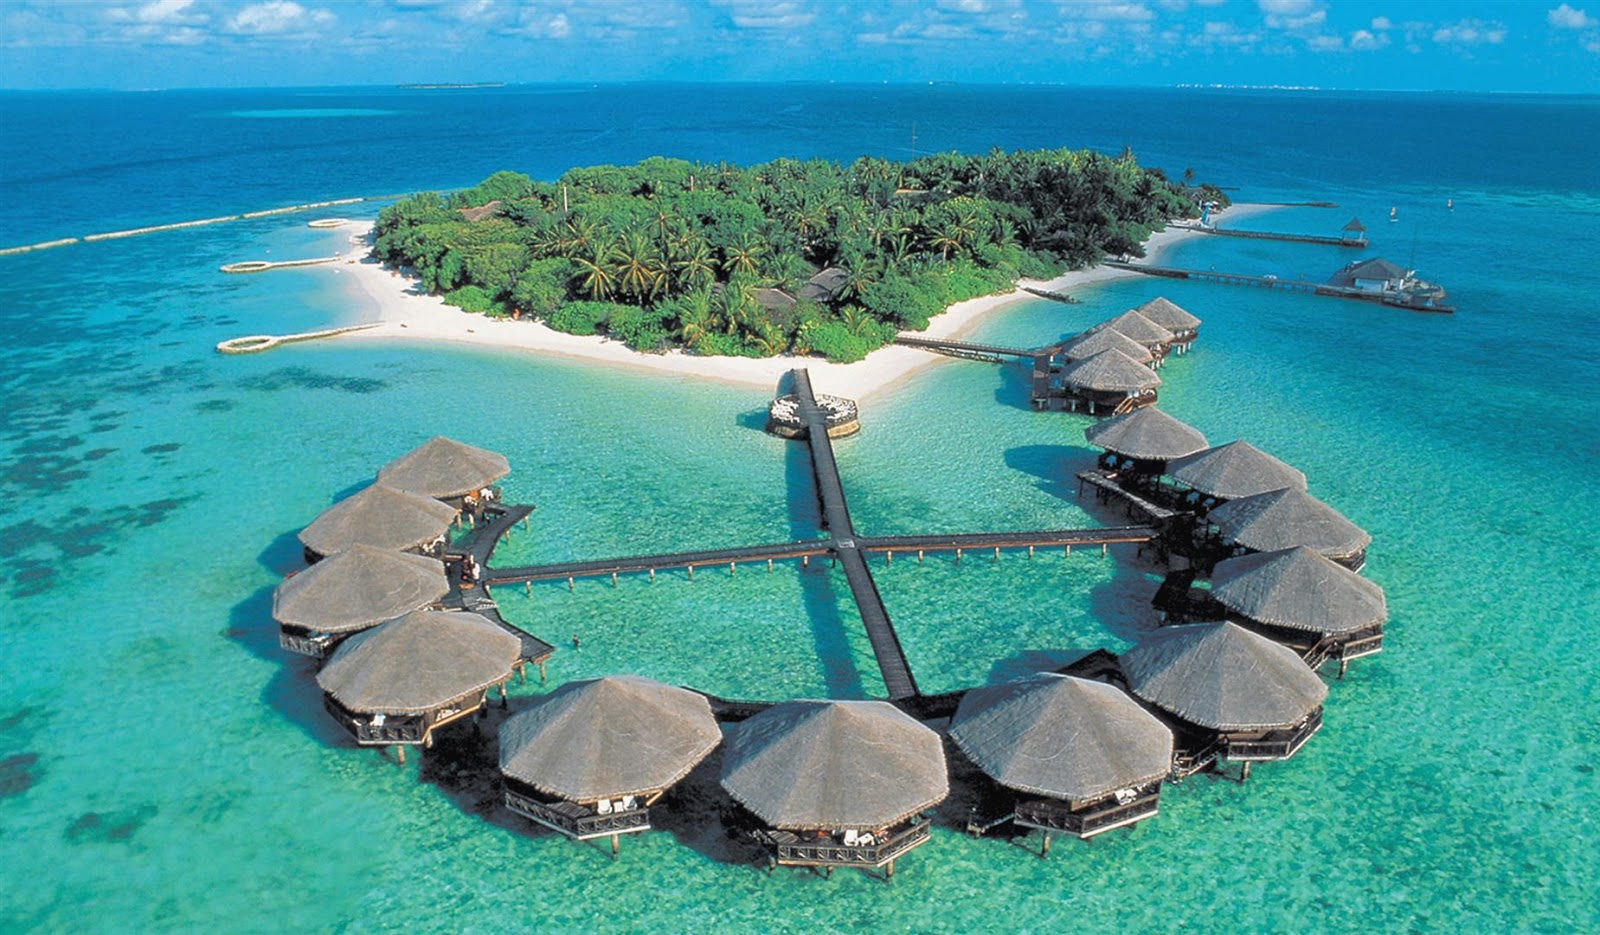 One Of The Most Famous And Leading Places For Honeymoon Goers This Island Is Amazing Place To Visit It Has Beautiful Crystal Waters Which Teamed Up With